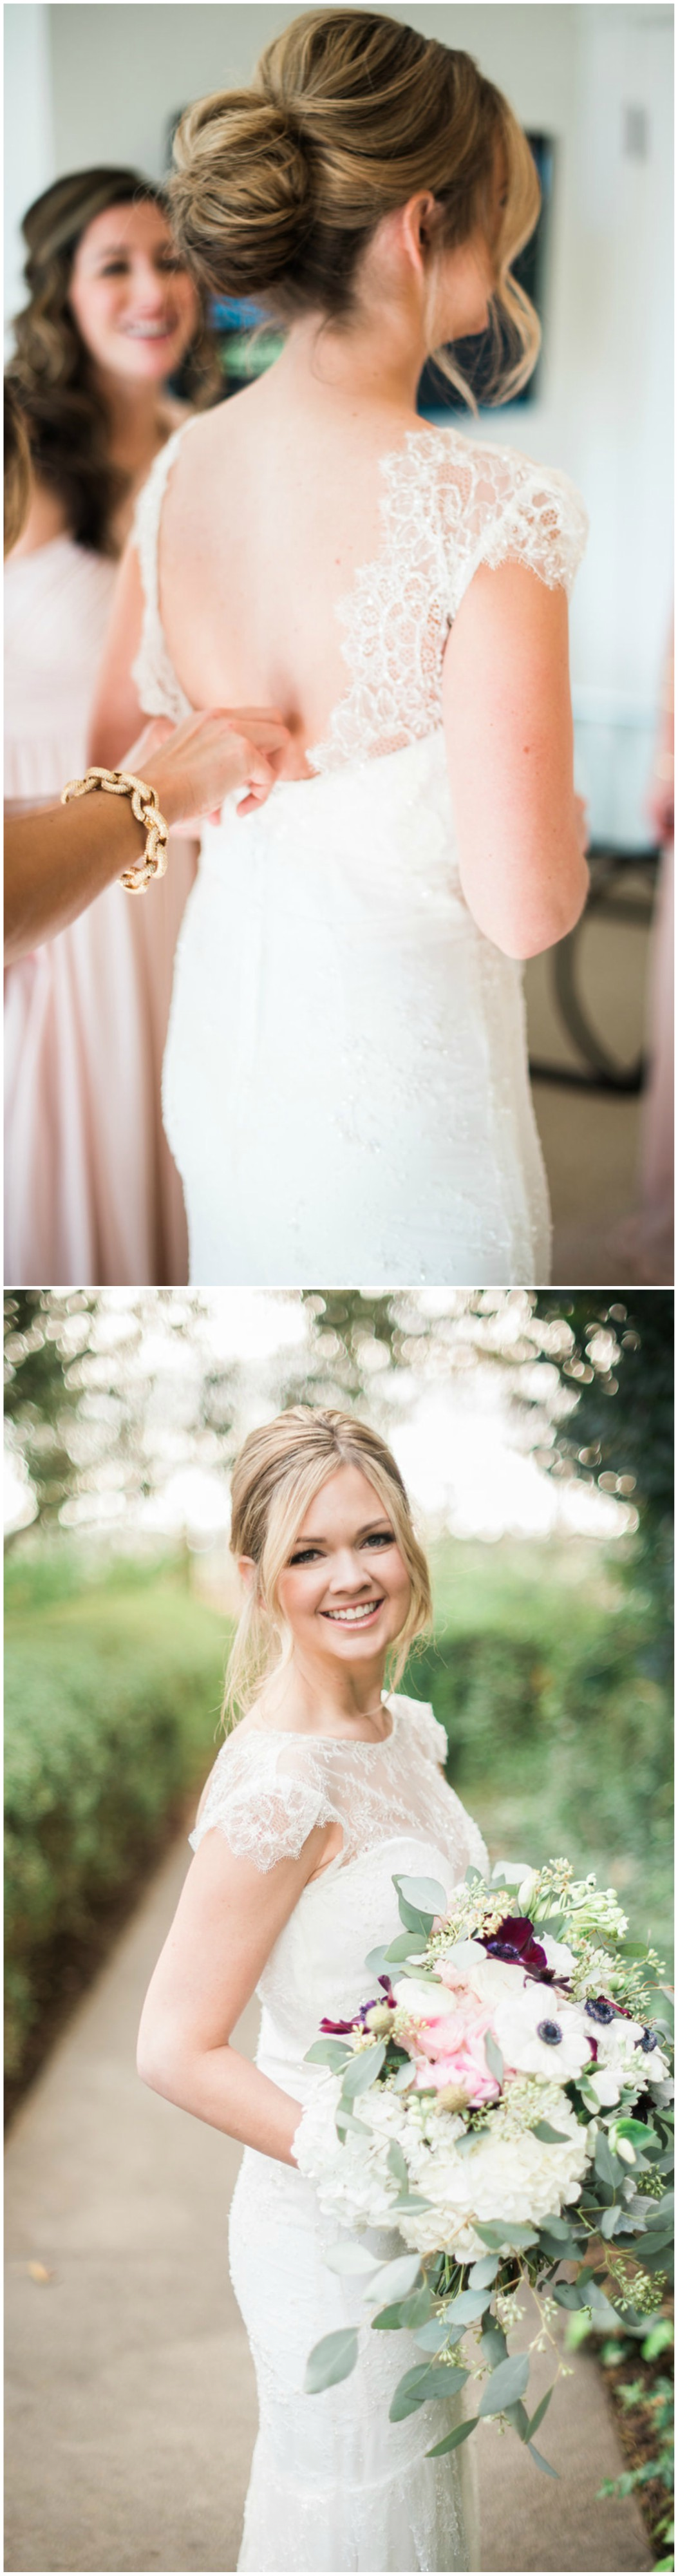 The Smarter Way to Wed   Wedding dress, Bridal gowns and Wedding